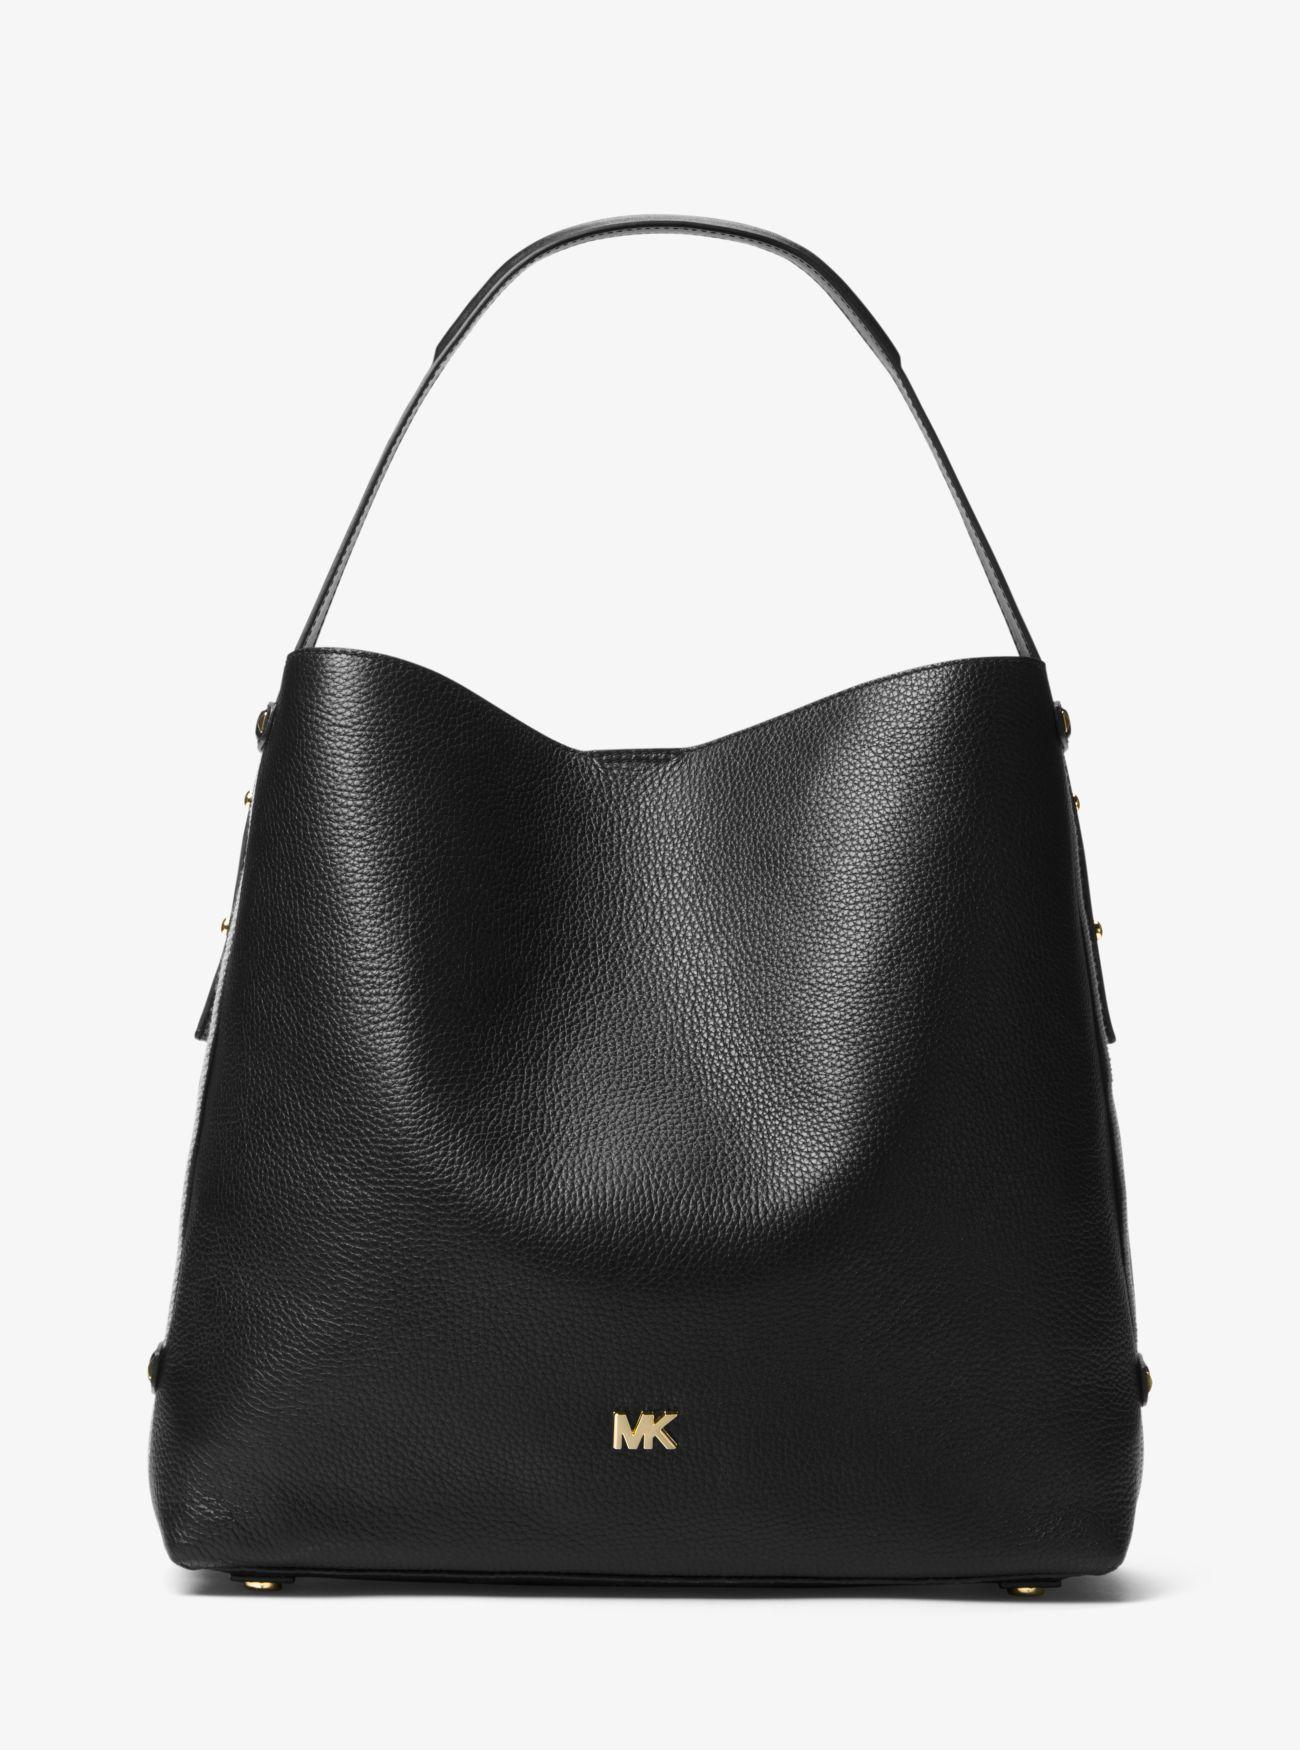 132d602273e5 258 Michael Kors Maddie Handbag Purse MK Bag LAST 1